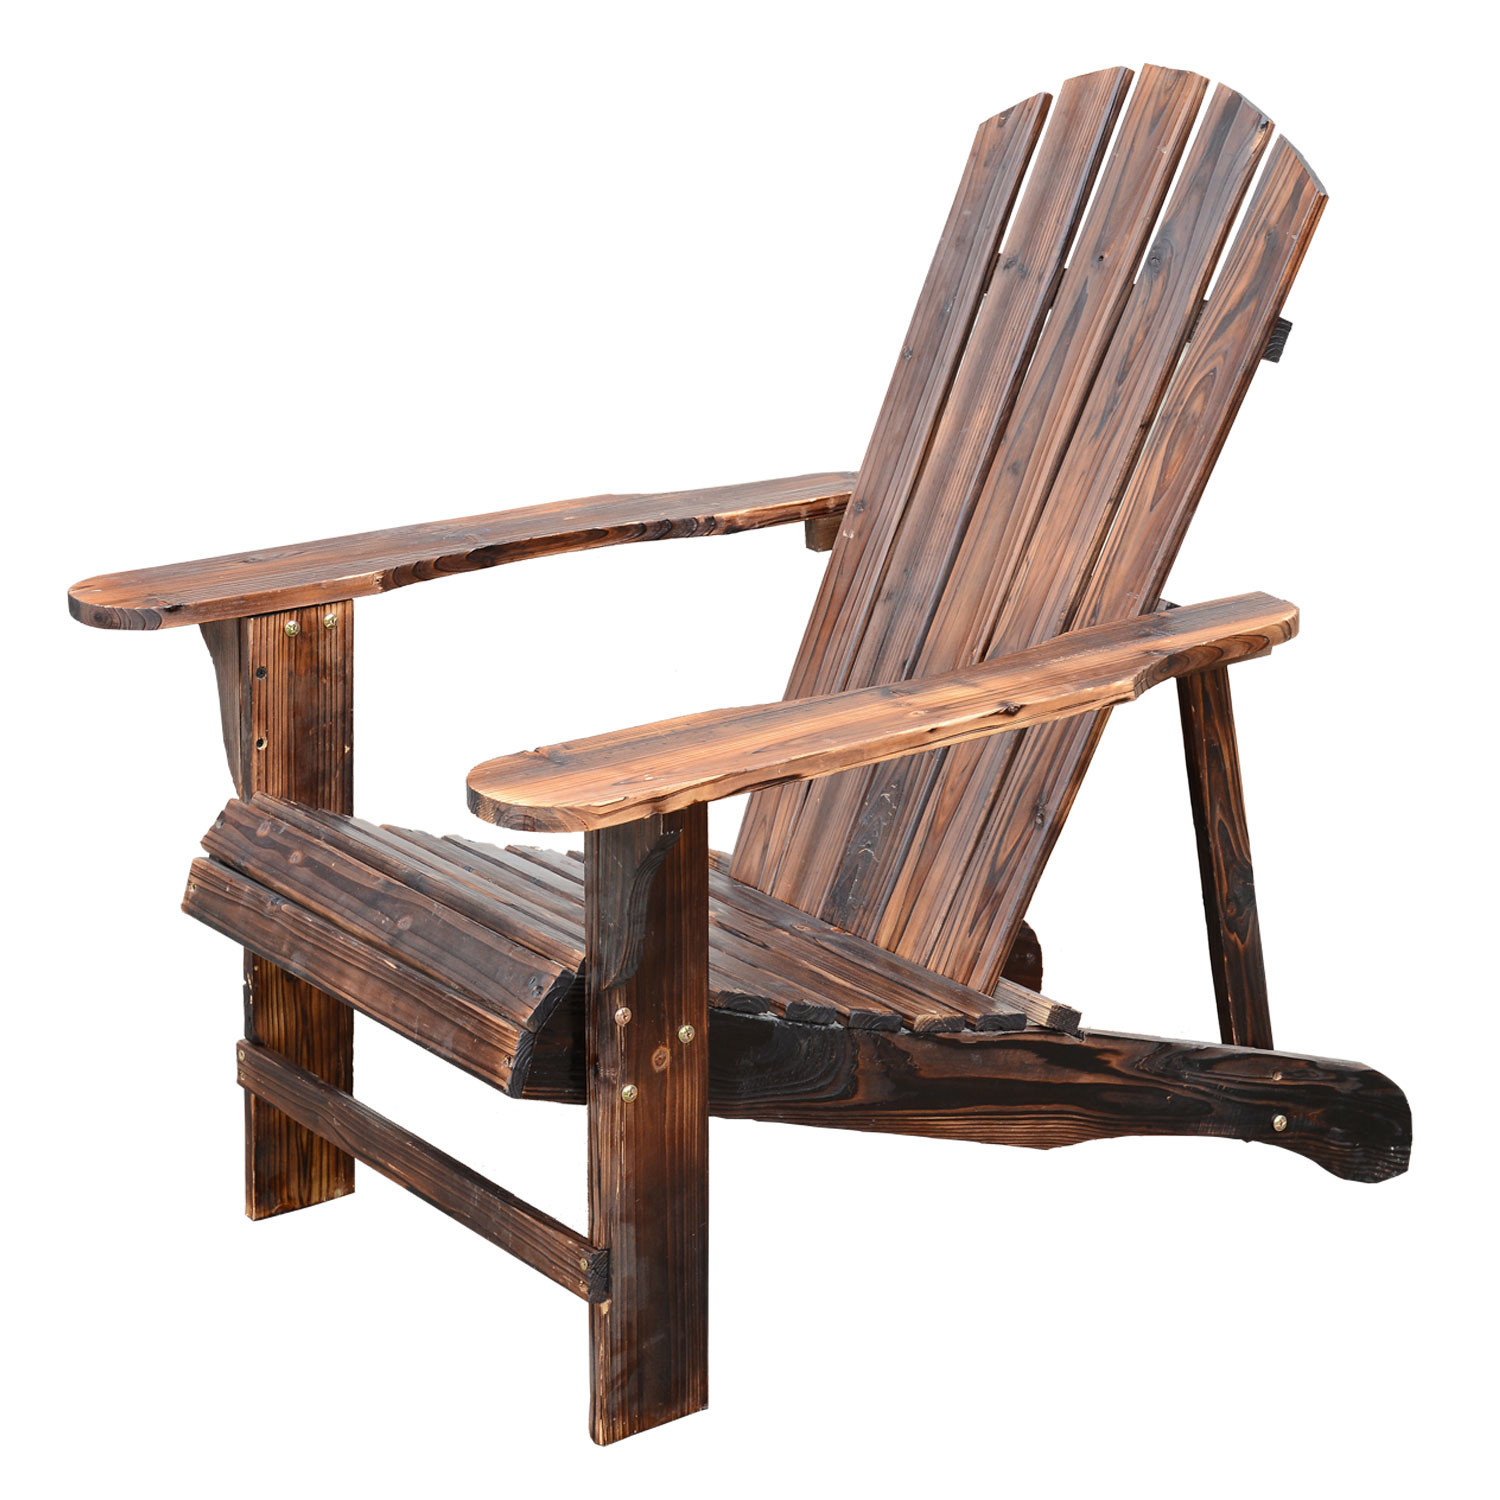 Best ideas about Outdoor Lounge Chairs . Save or Pin Outsunny Wooden Adirondack Outdoor Patio Lounge Chair Now.